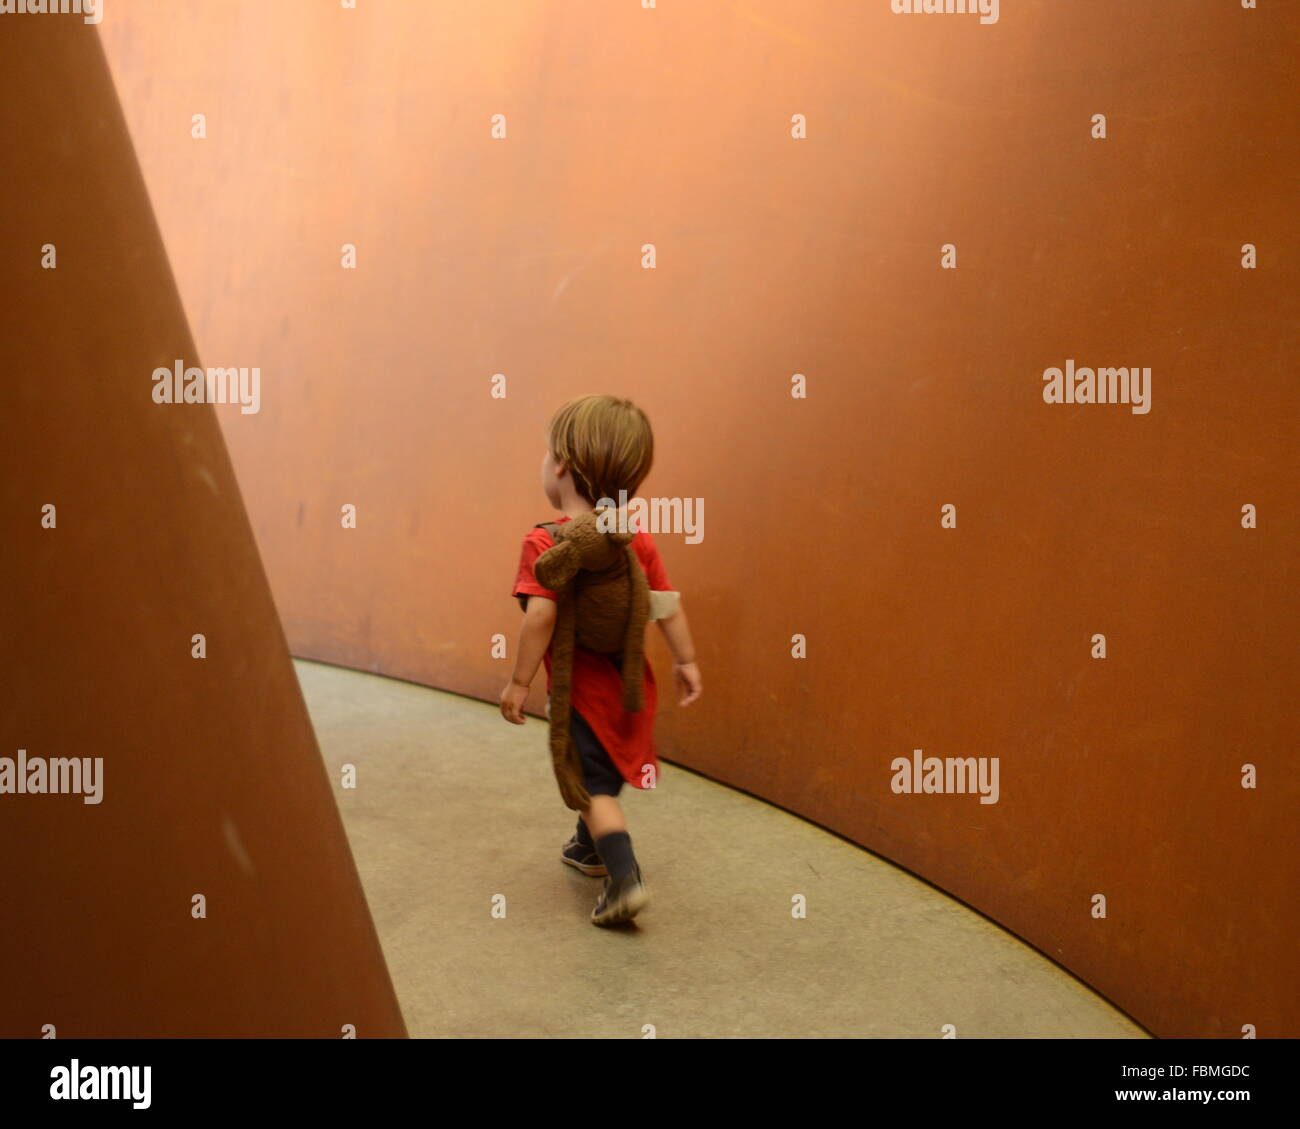 Full Length Rear View Of Boy Walking In Passageway - Stock Image